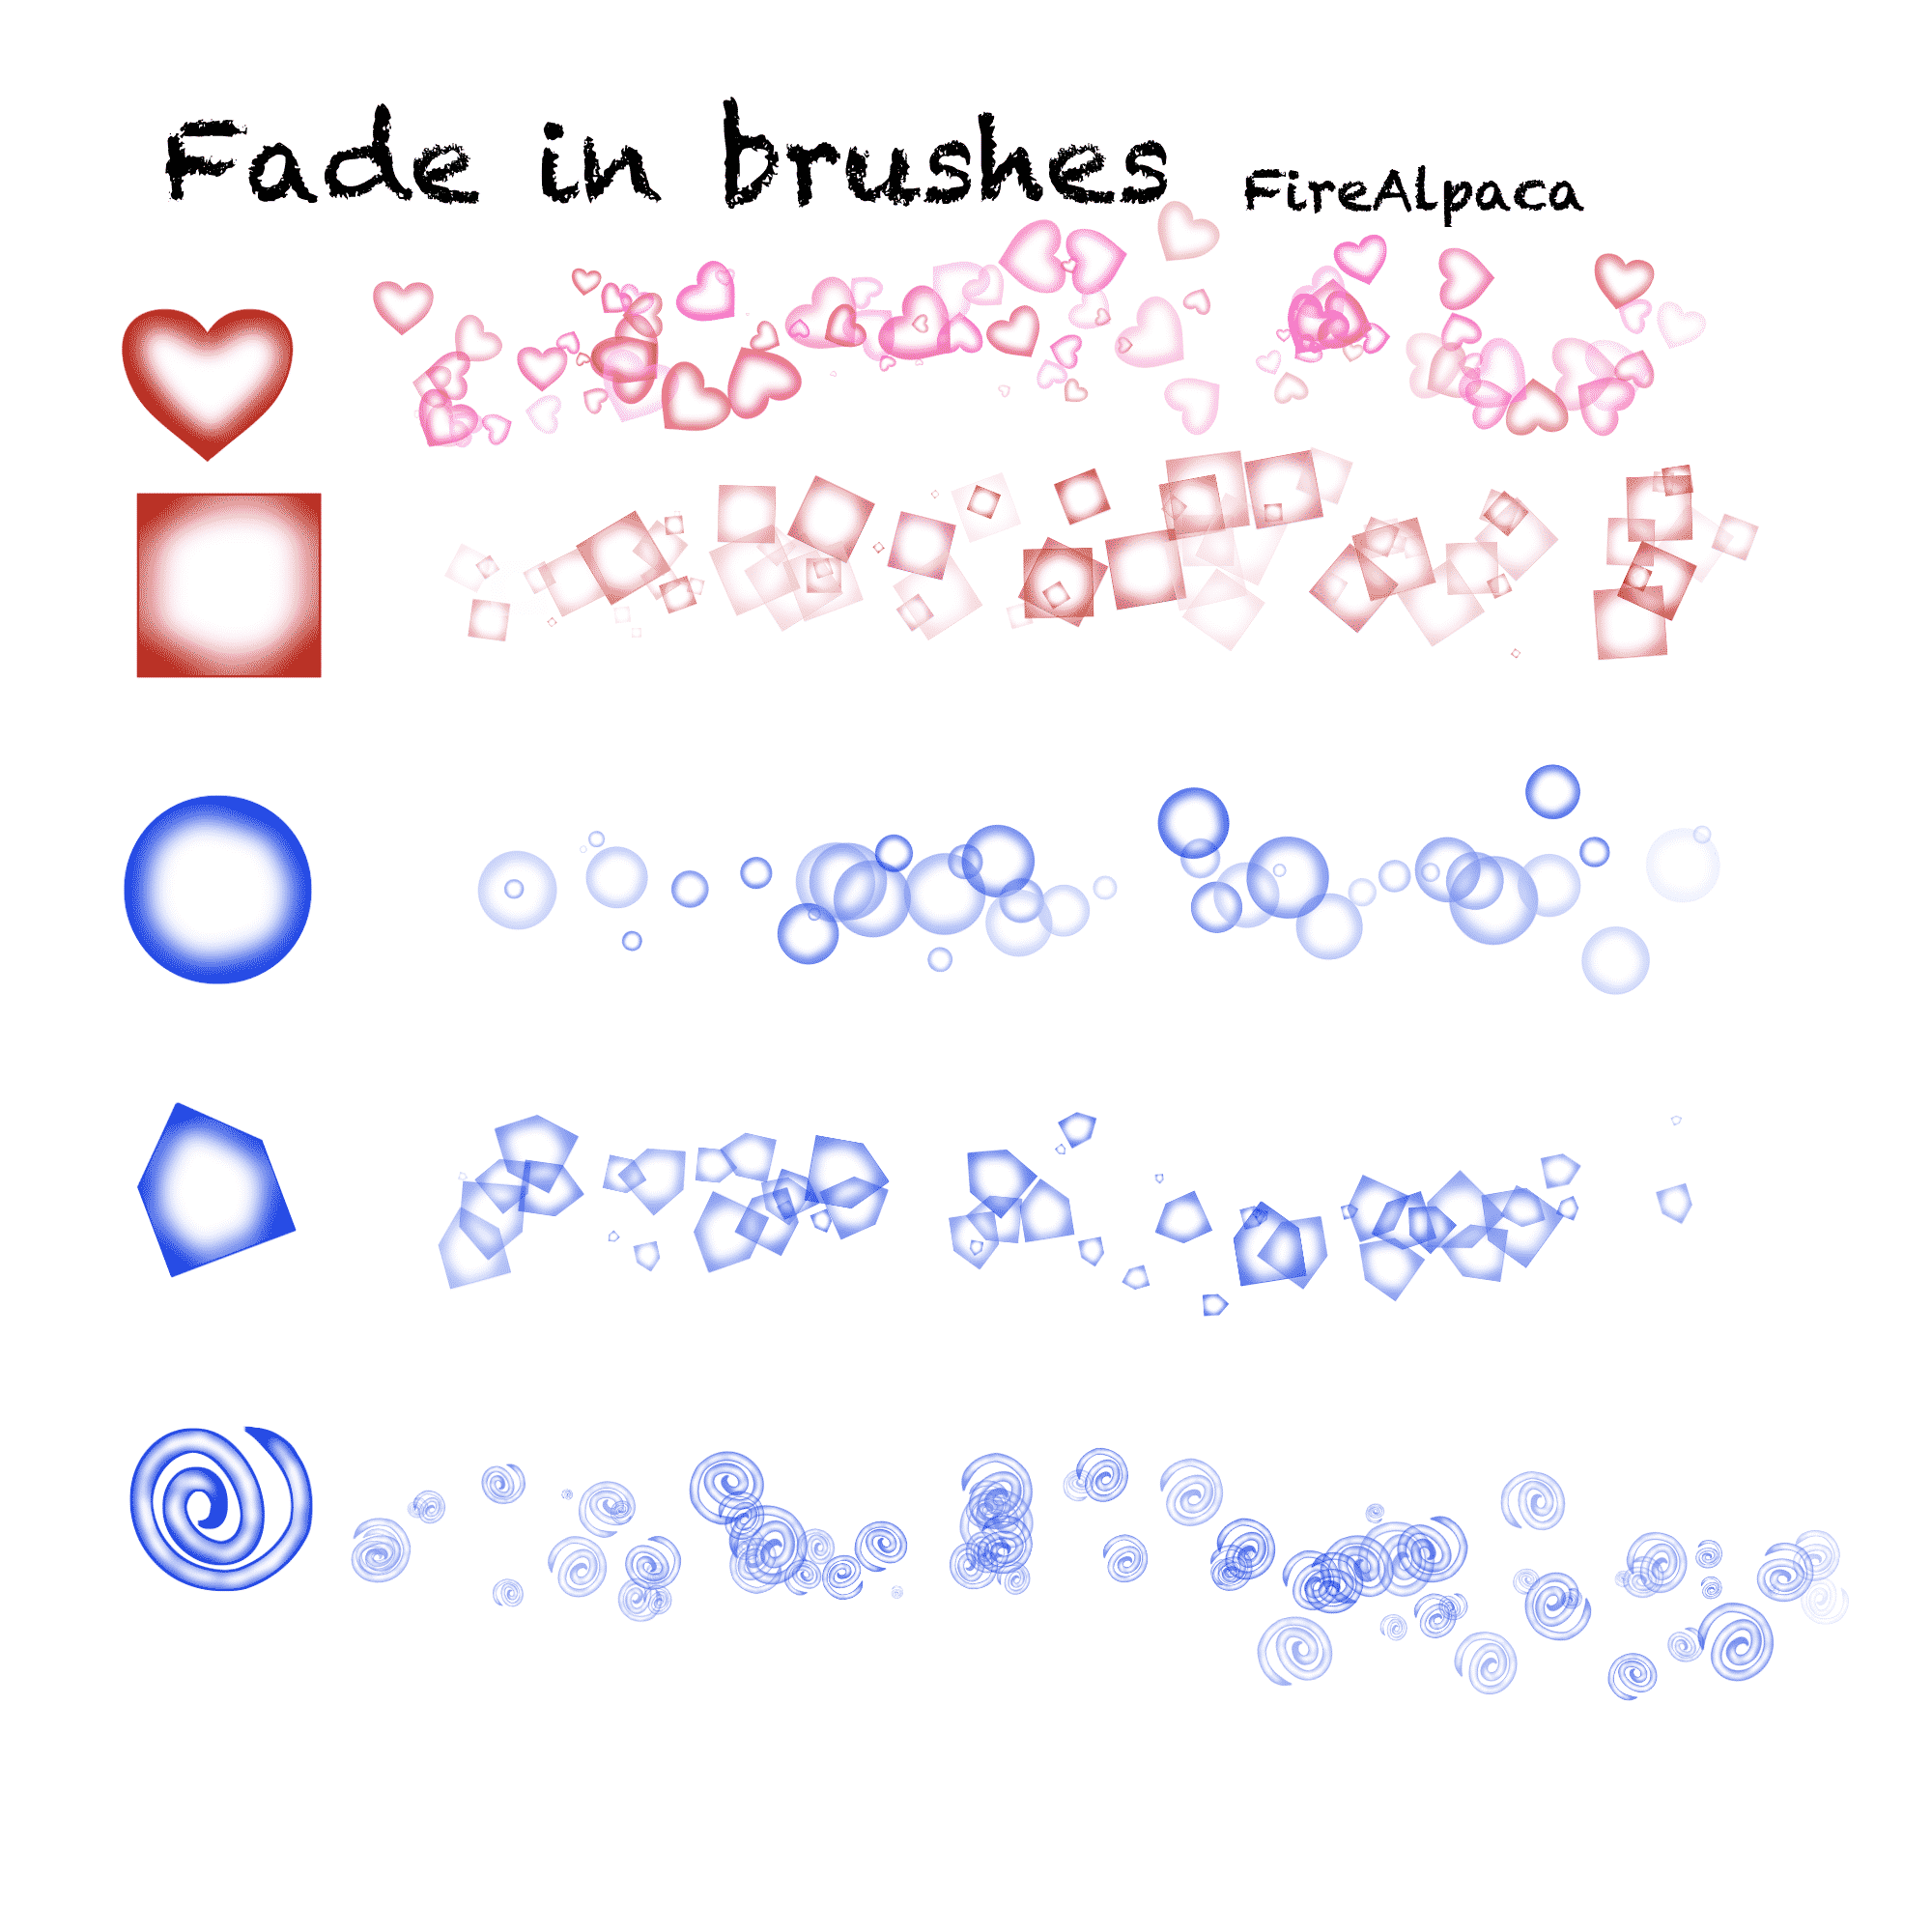 29. Fade In Brushes